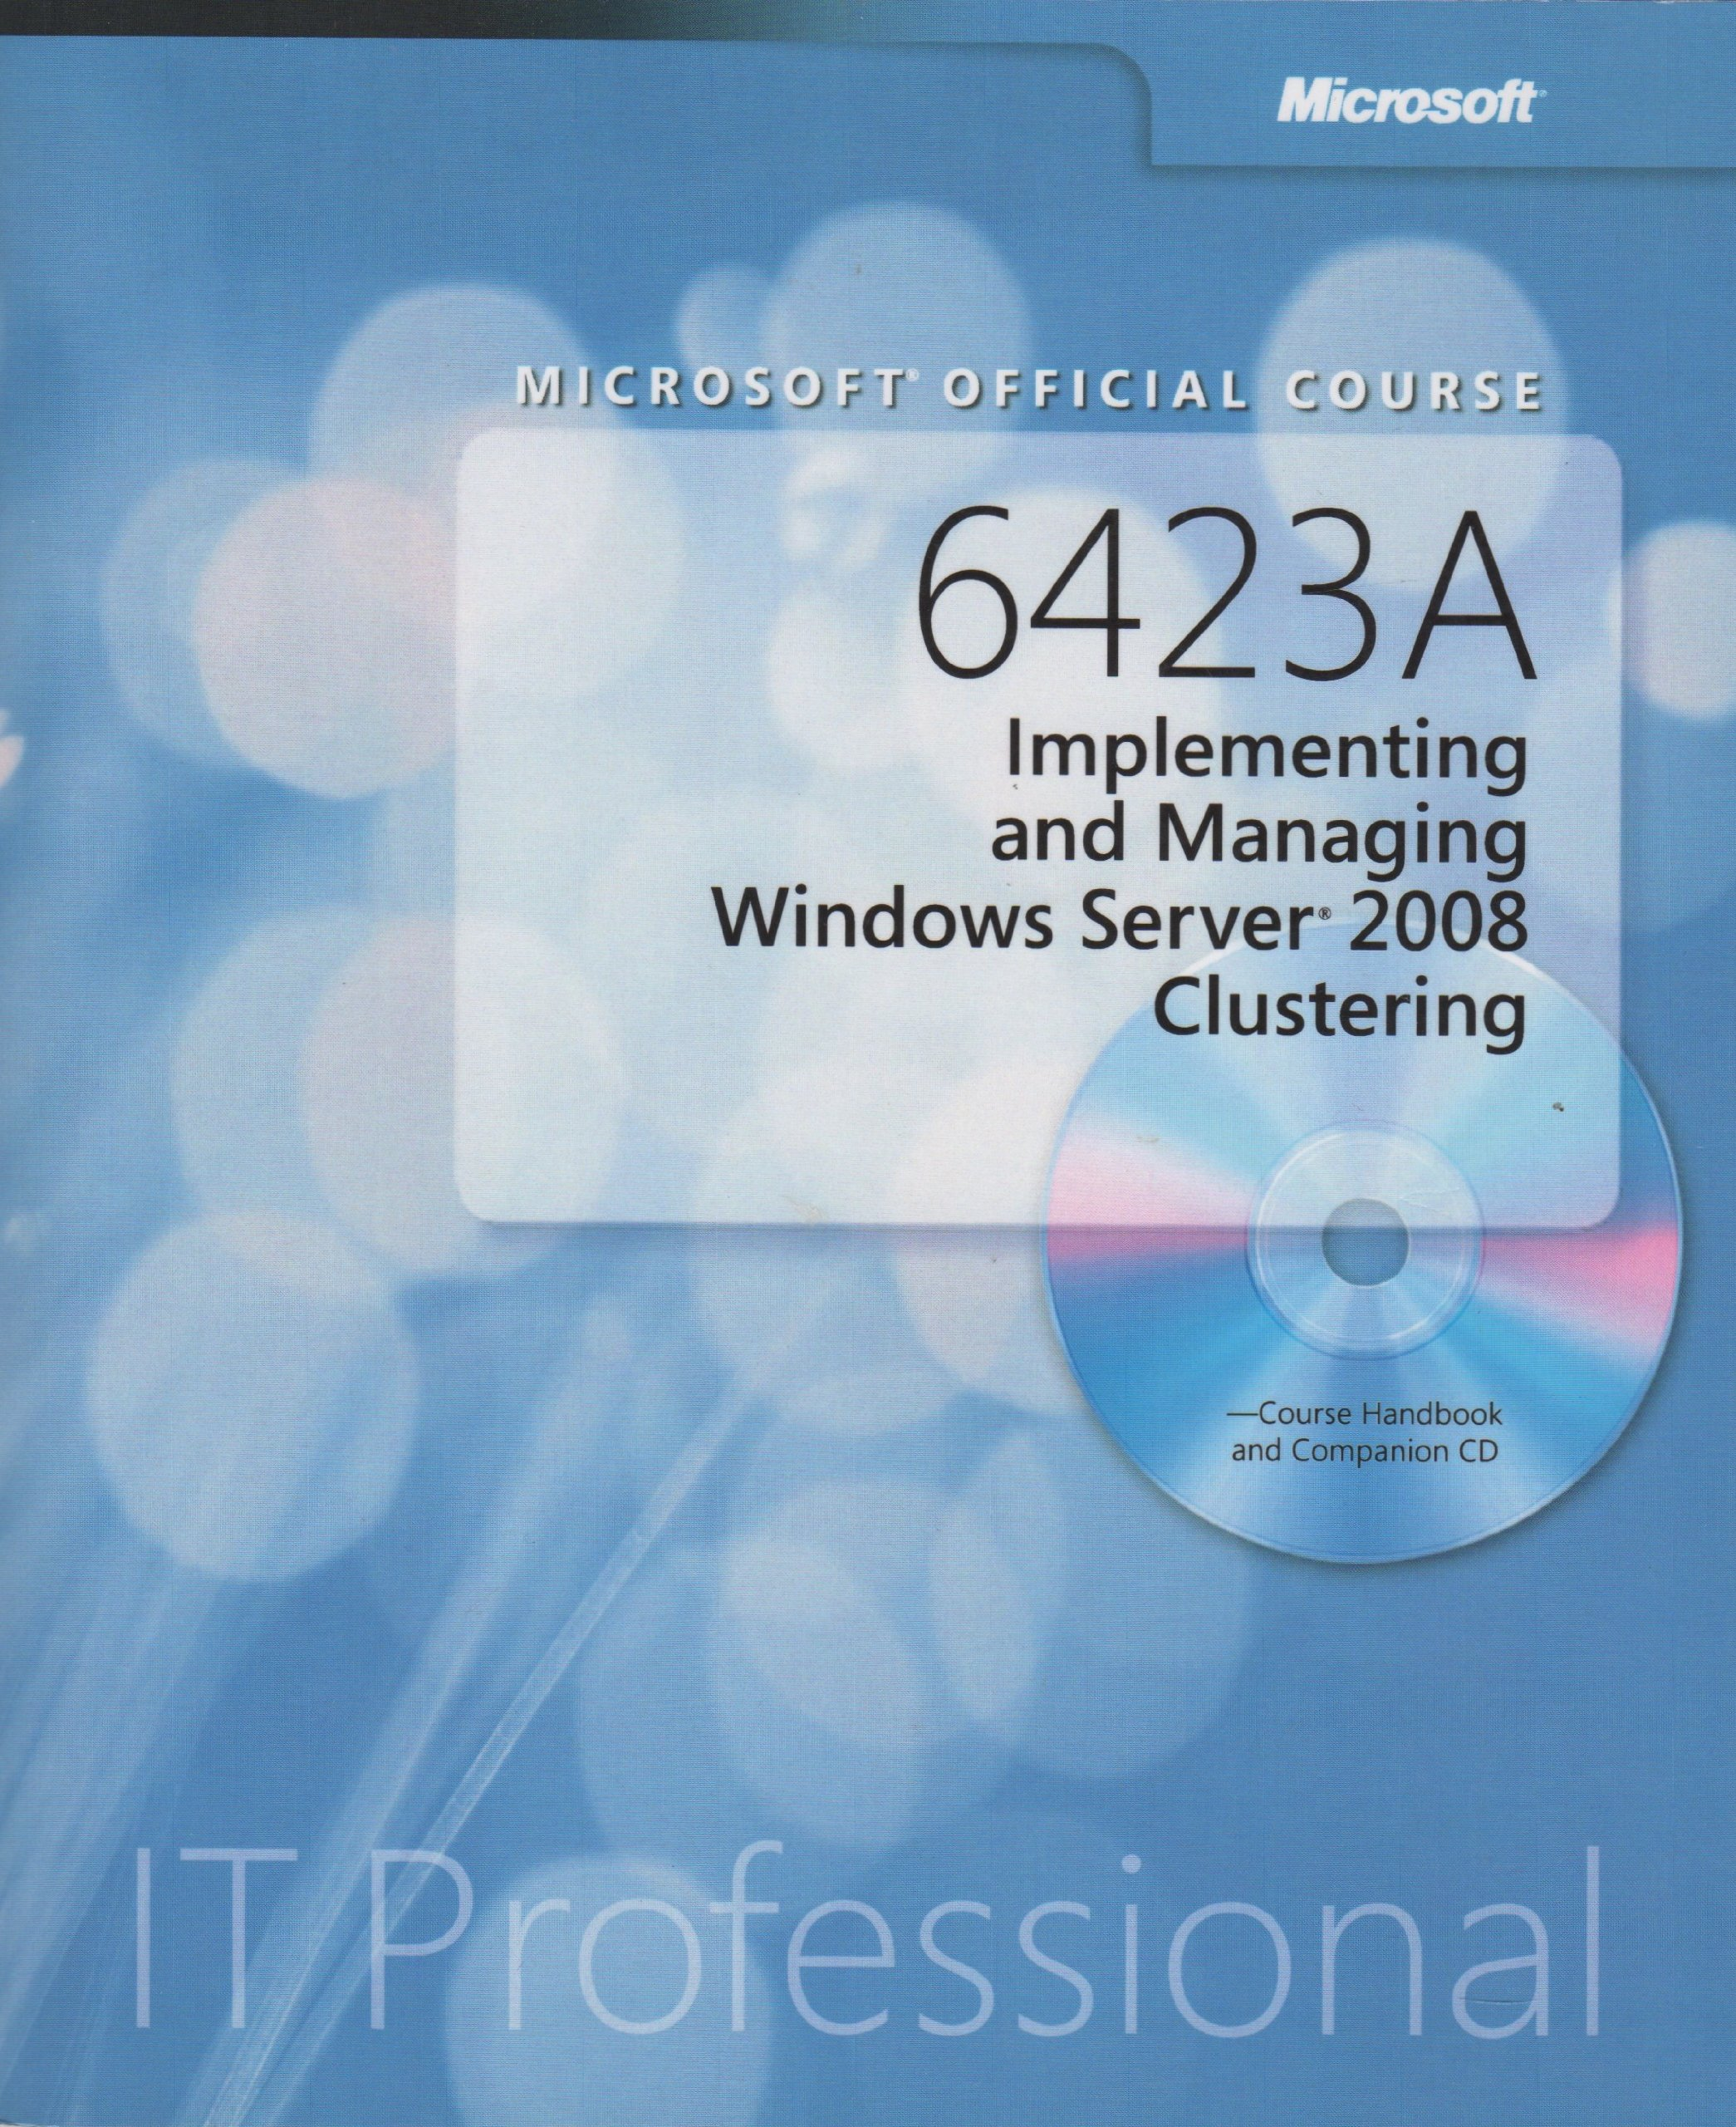 Read Online Microsoft Official Course 6423A: Implementing and Managing Windows Server 2008 Clustering w/ CD pdf